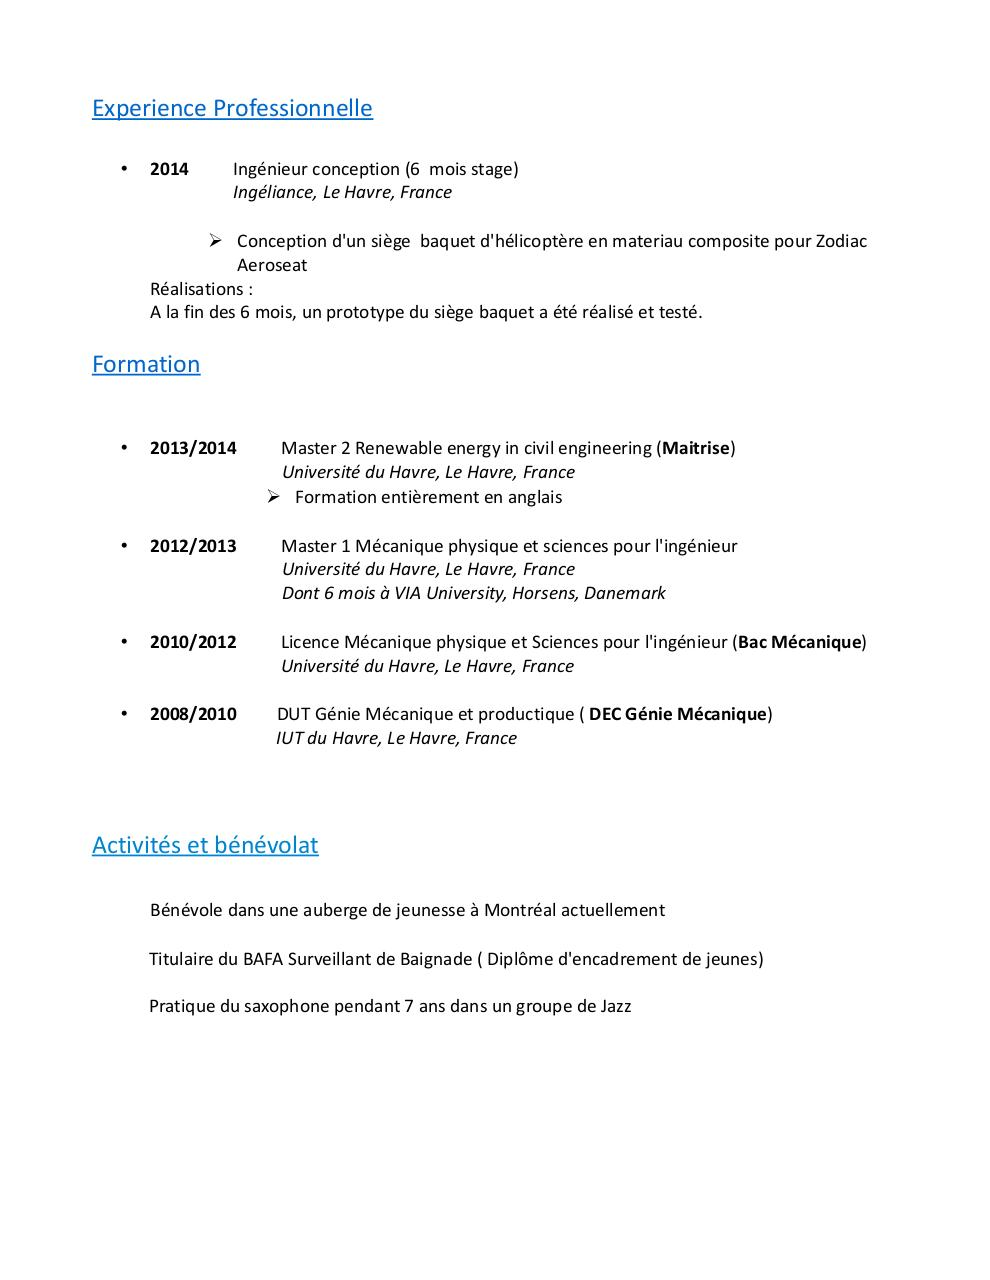 cv boris denis 2015  cv boris denis 2015 pdf